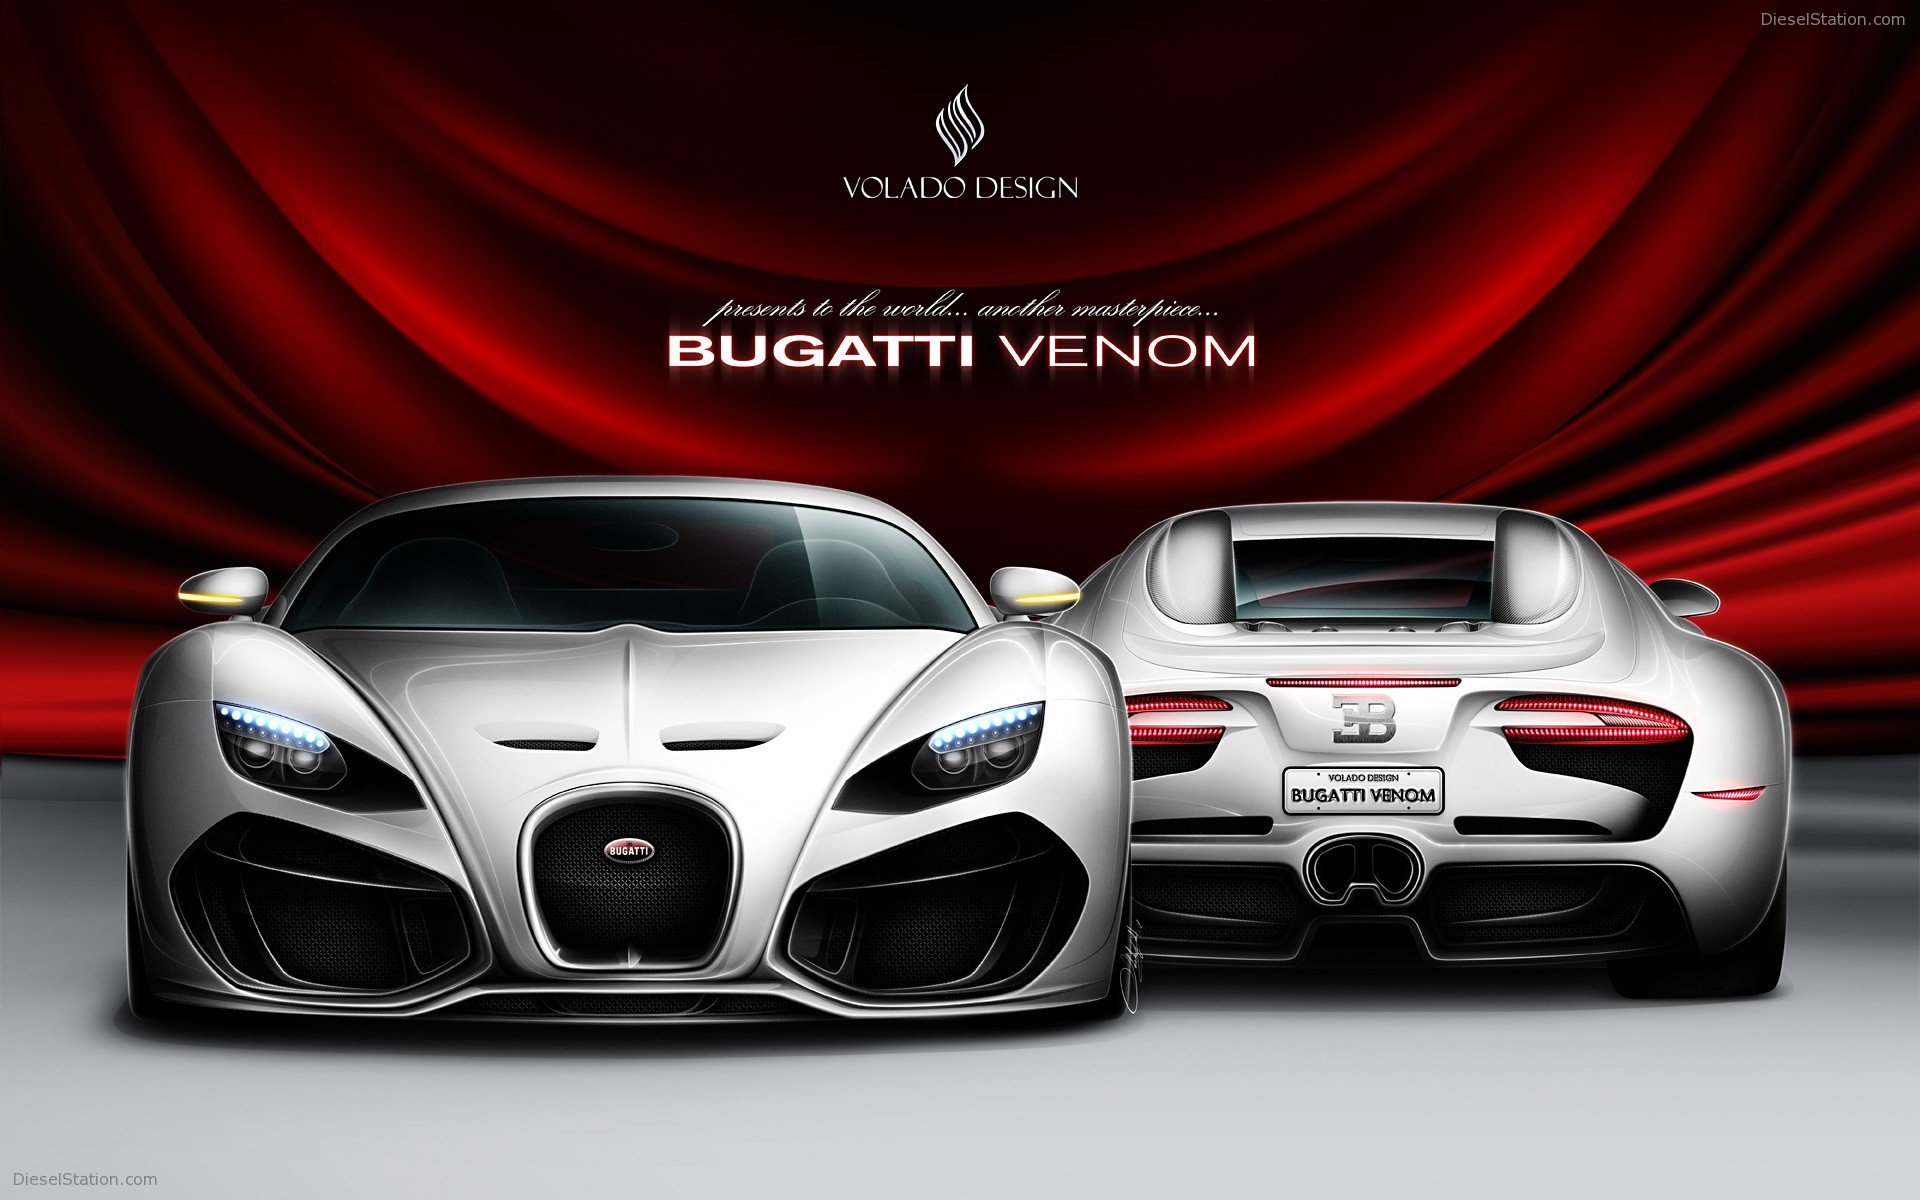 Exotic Cars wallpape